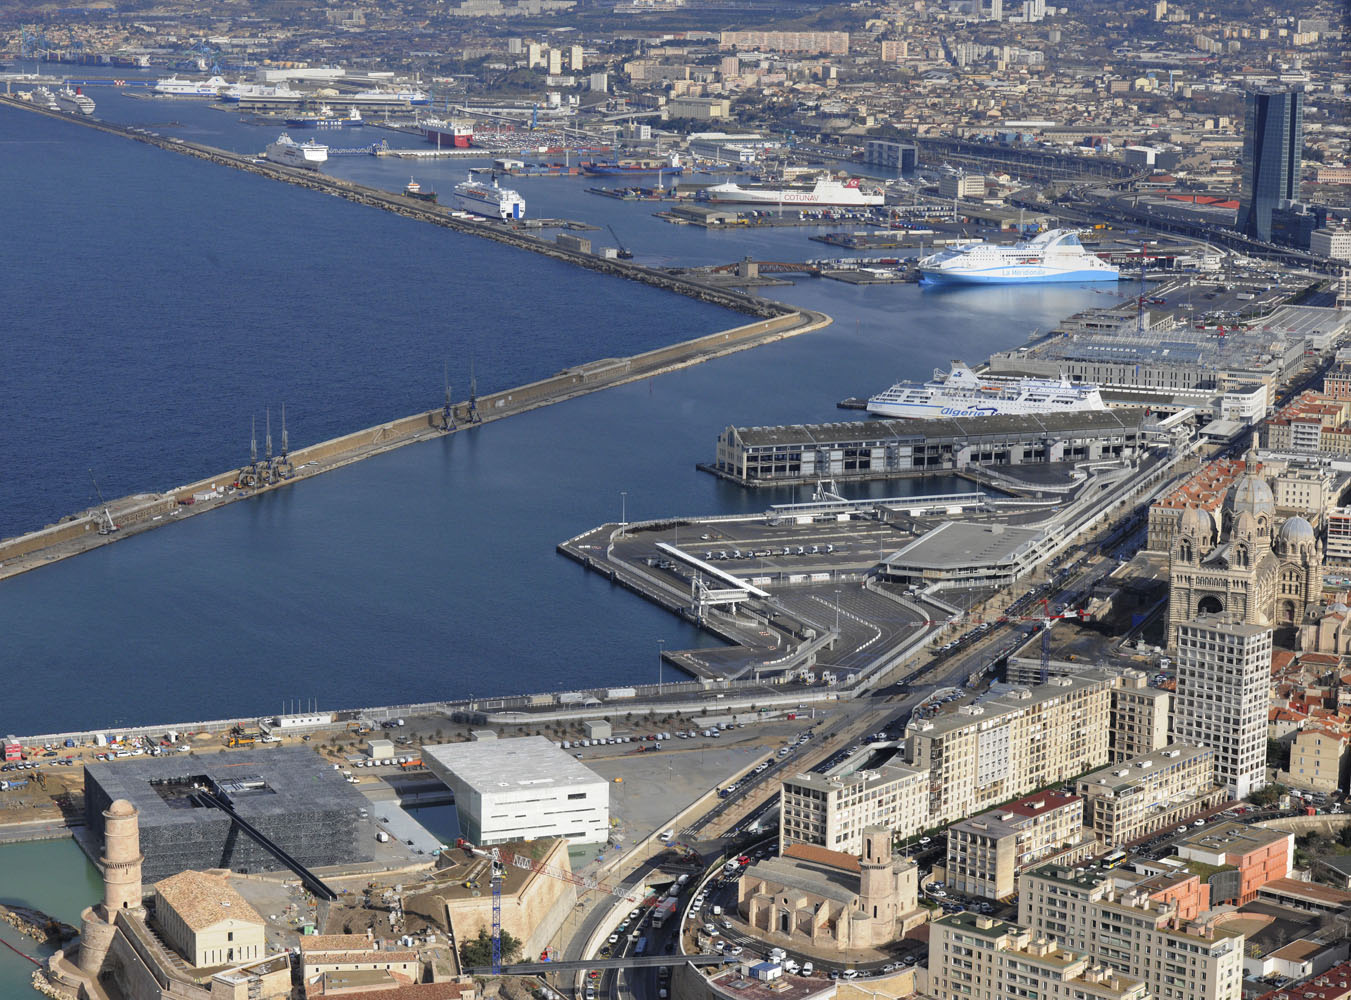 The port of Marseille-Fos in France is deserved by Marfret 6a7a9a9f9b181